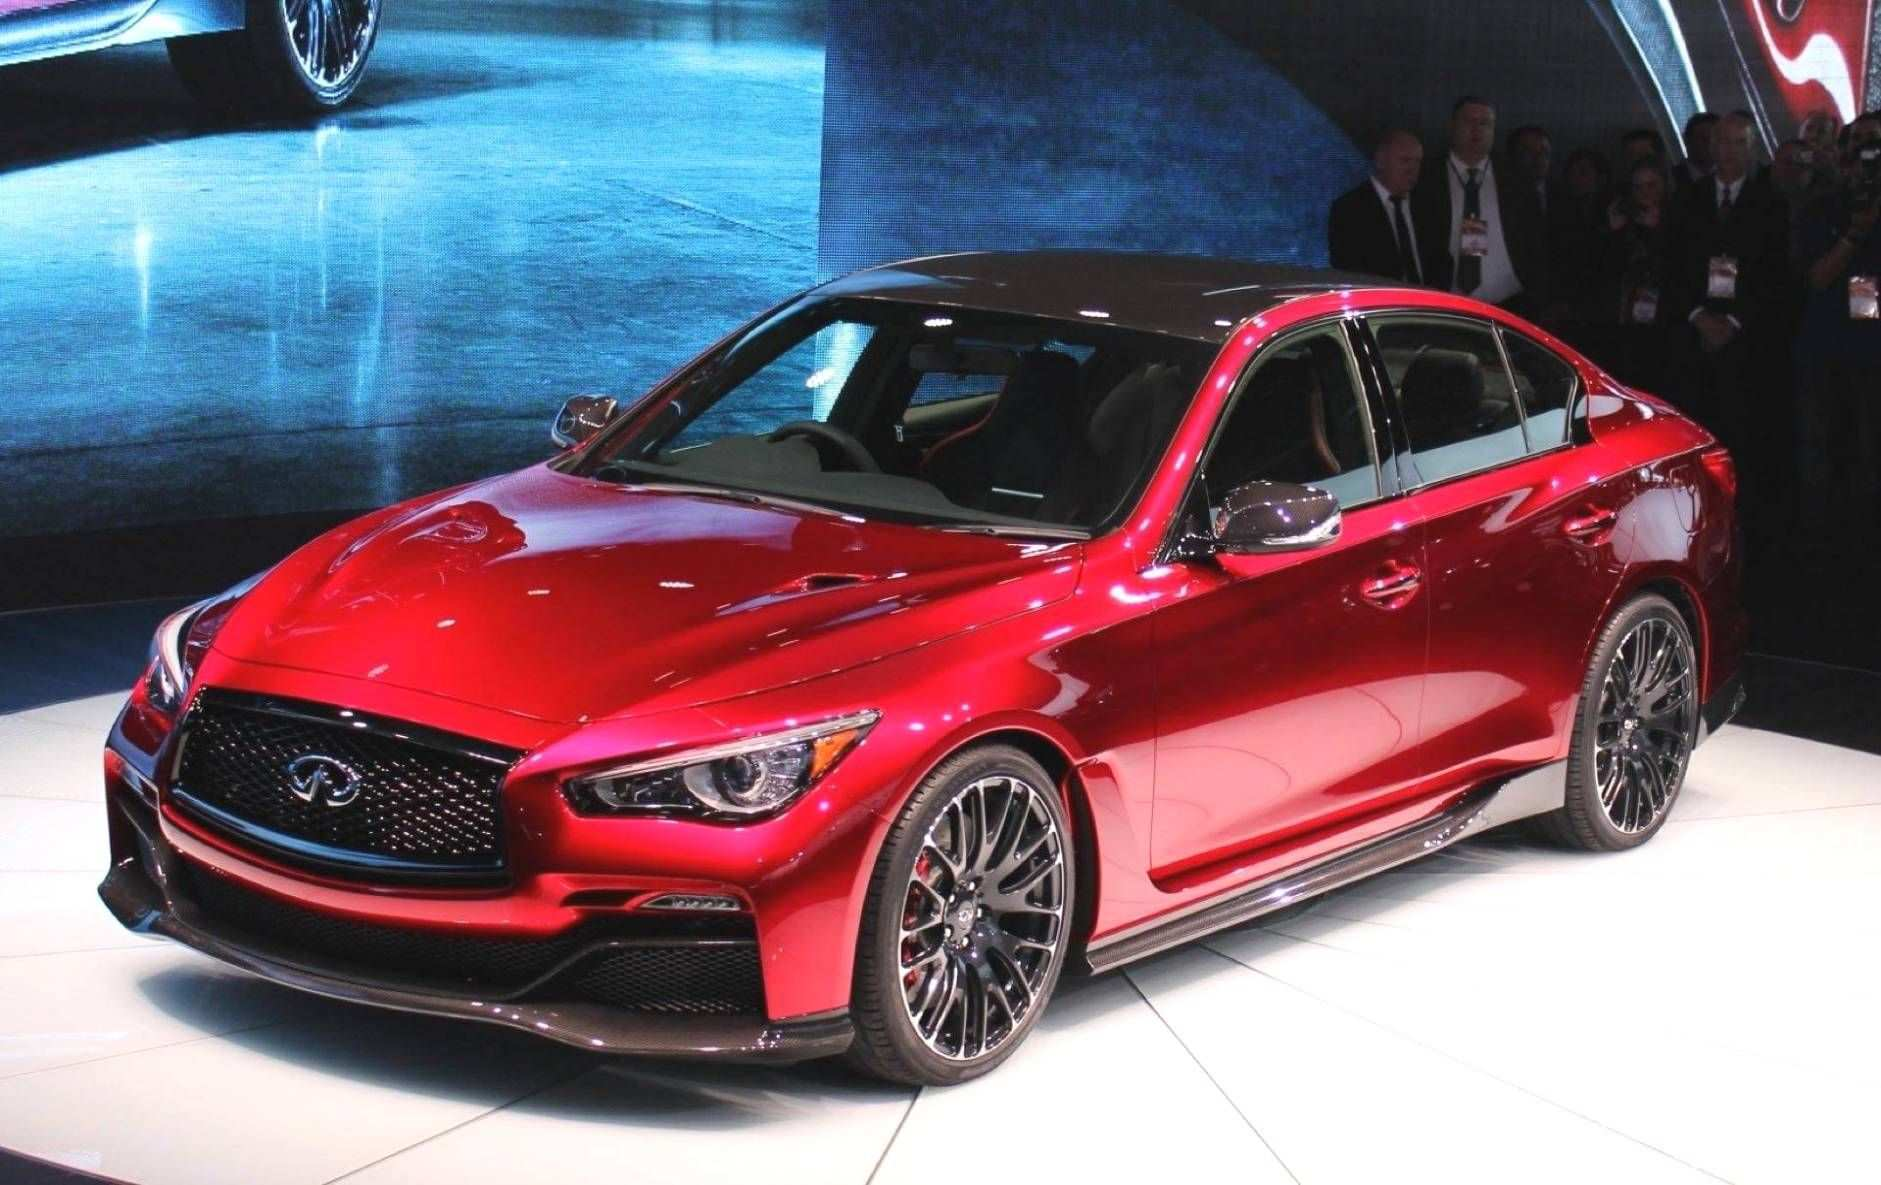 95 New Infiniti Q50 2020 Redesign Price And Release Date